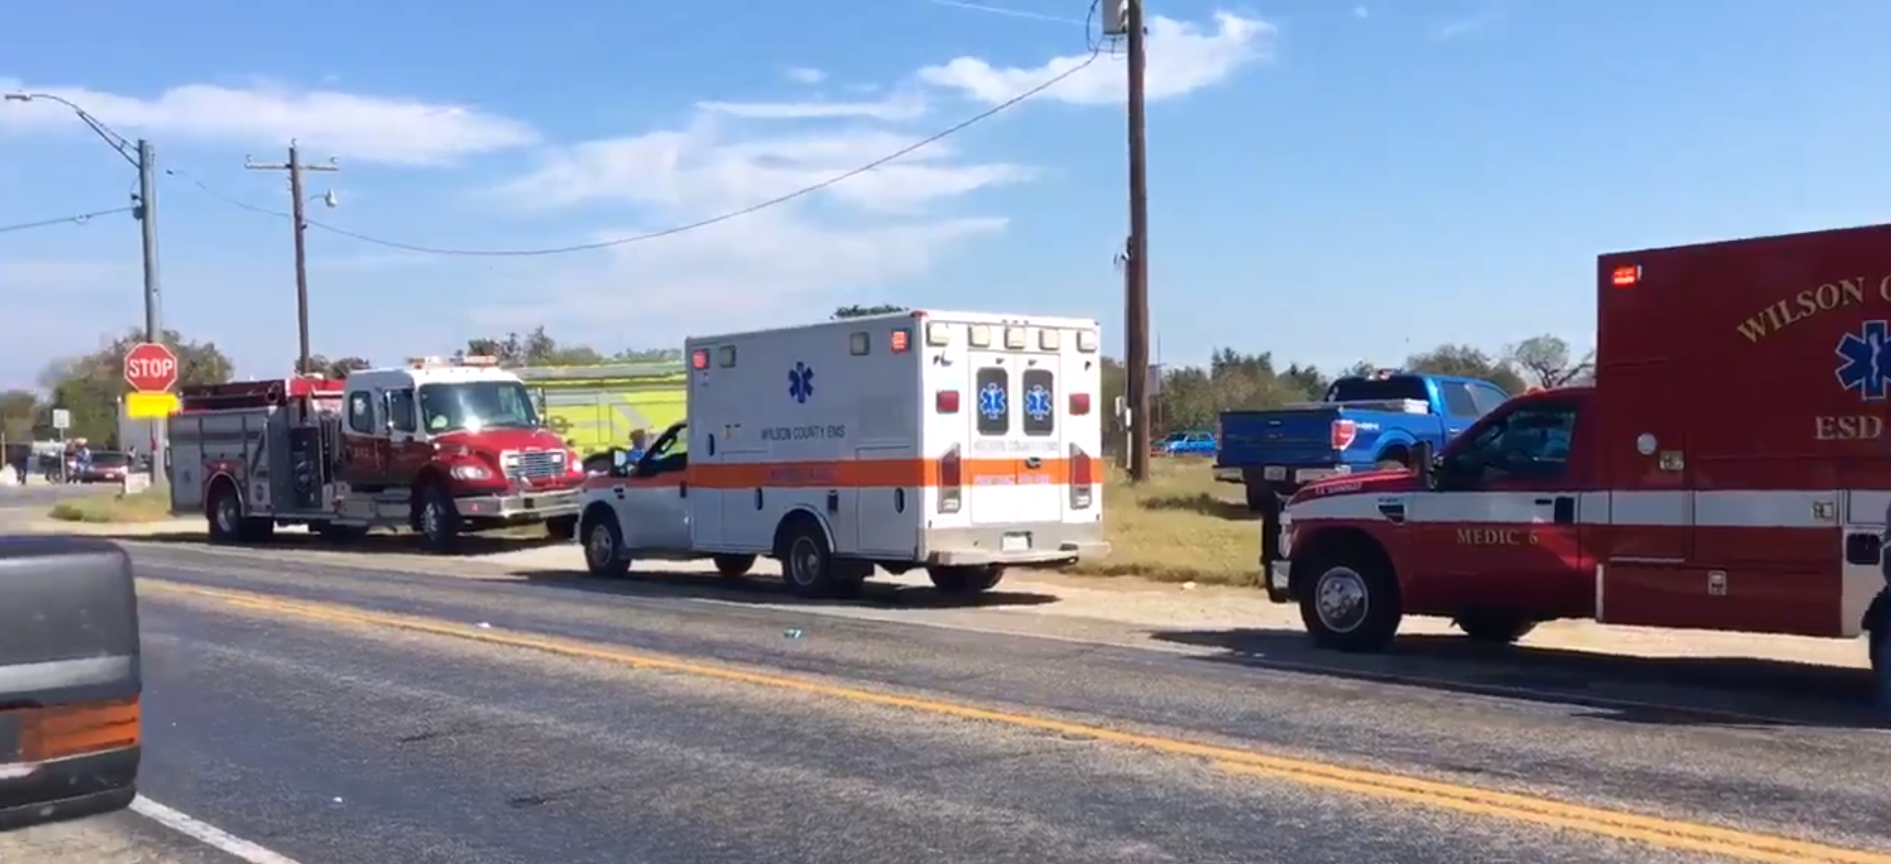 Emergency vehicles lined up outside the First Baptist Church in Sutherland Springs, Tex.  (PHOTO: Screenshot via Twitter/Max Massey/KSAT)